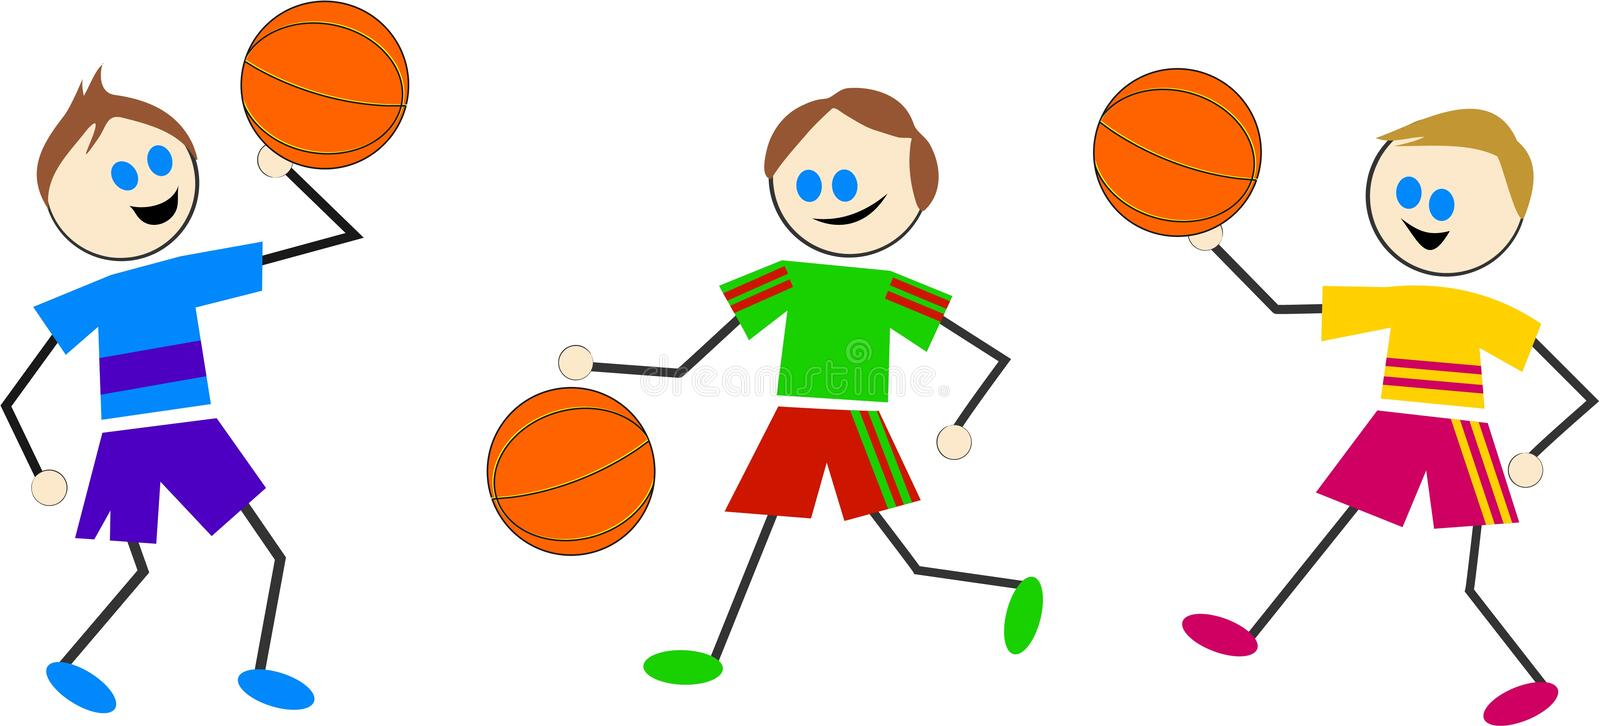 Basketball kids stock illustration